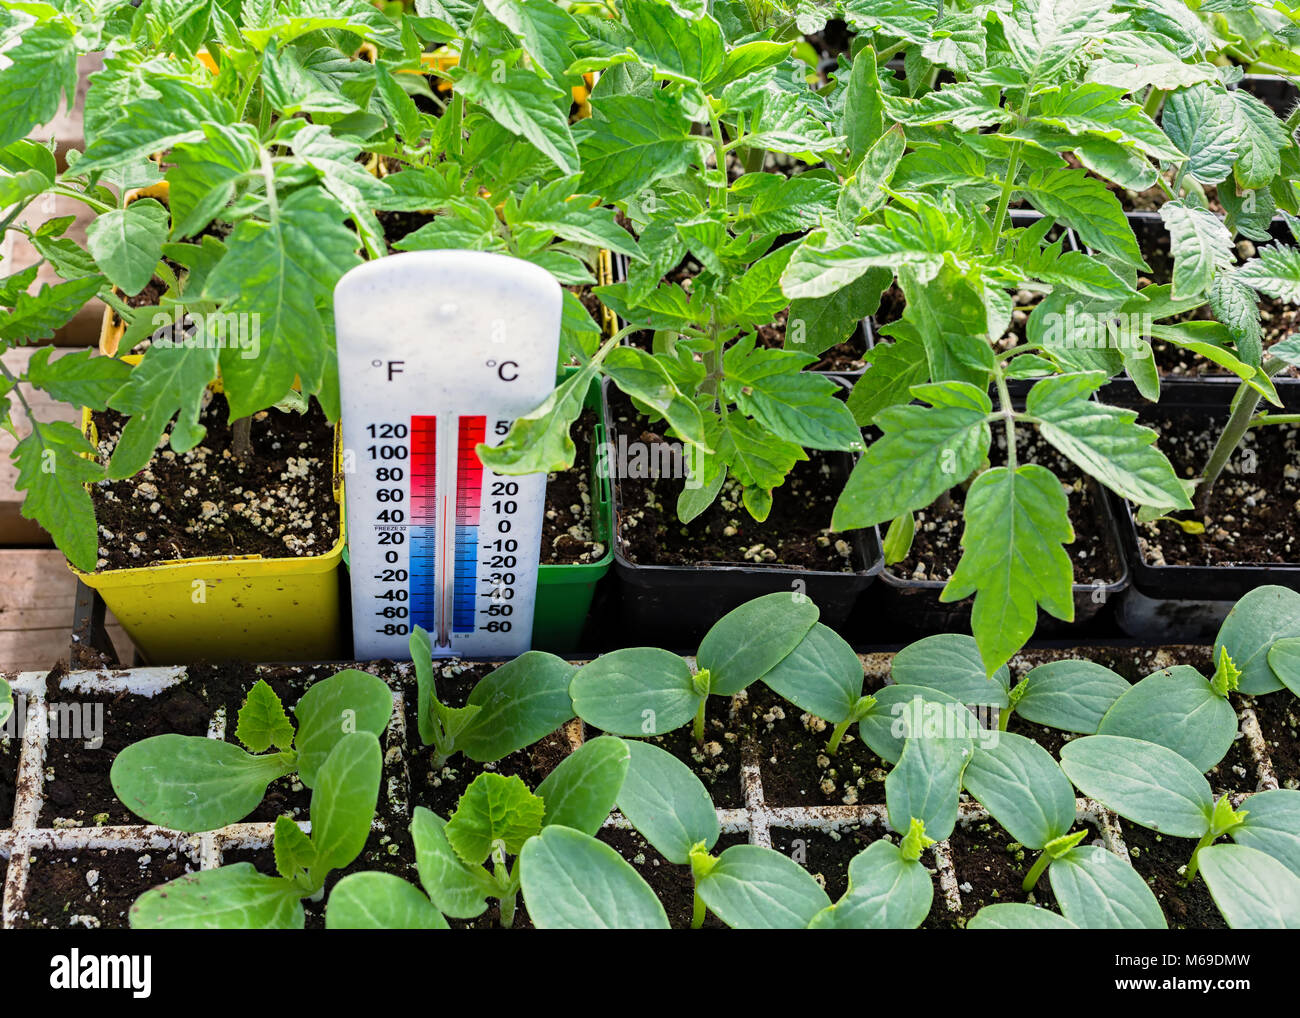 Thermometer registering temperature in the greenhouse. - Stock Image